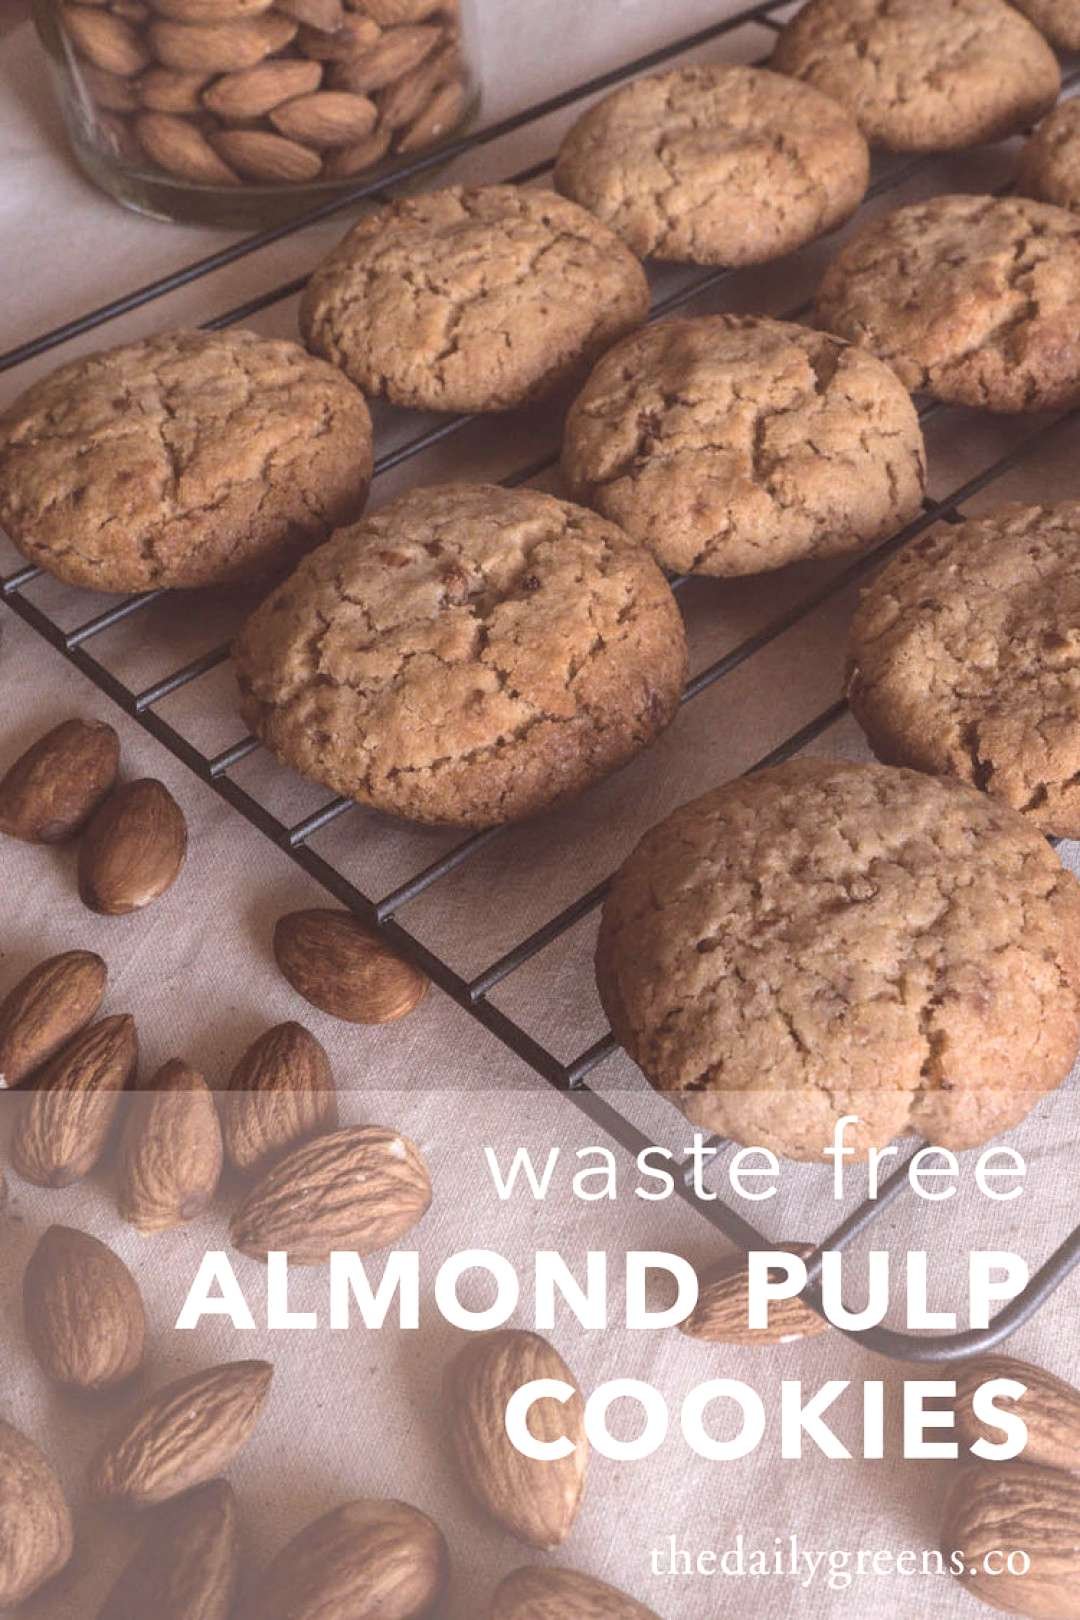 Almond Milk Pulp Cookies — The Daily Greens